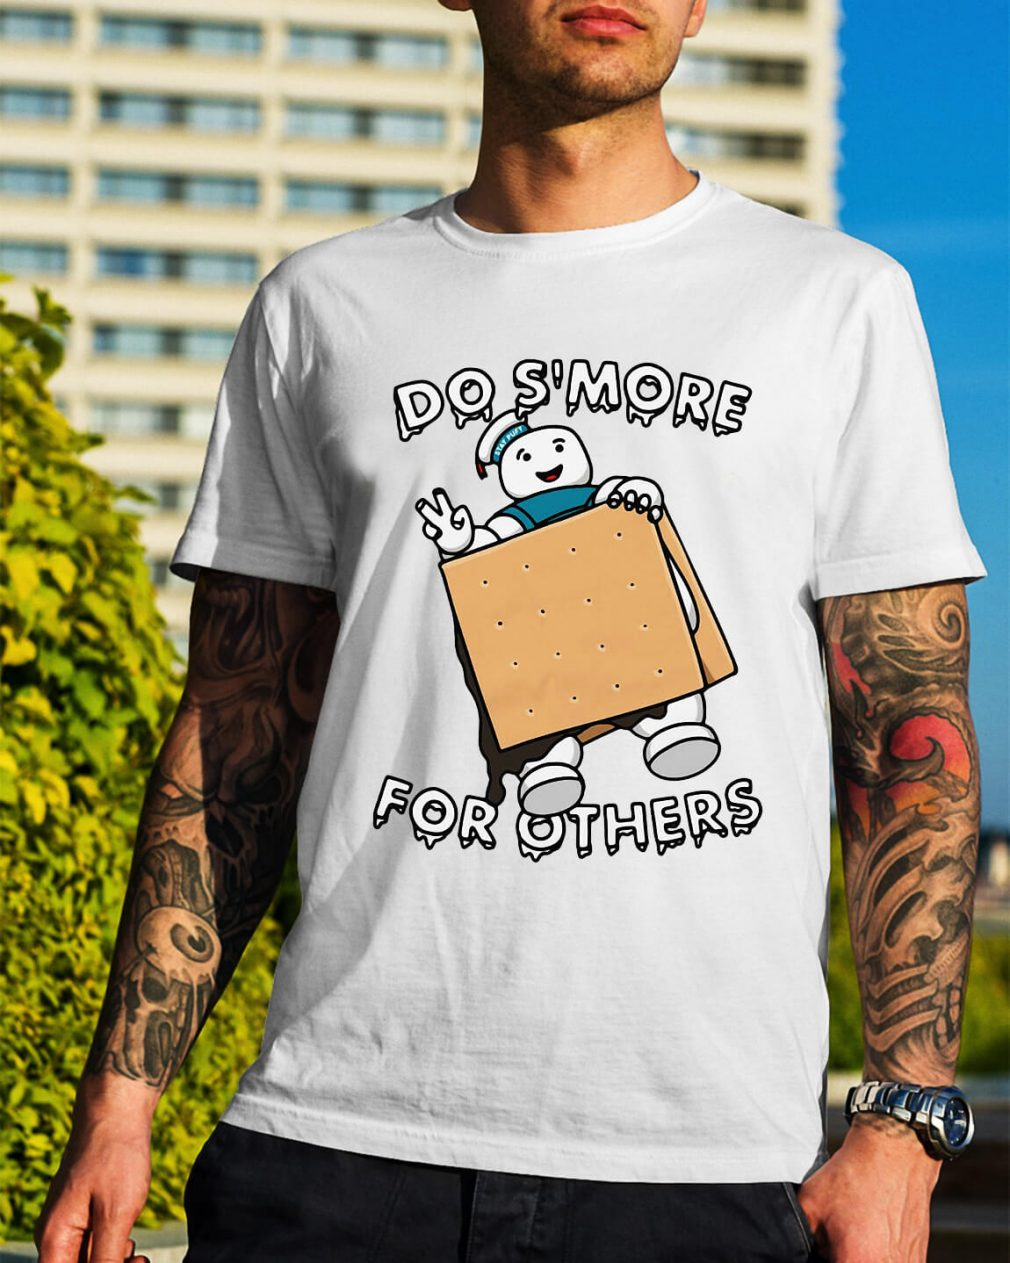 Do s'more for others shirt